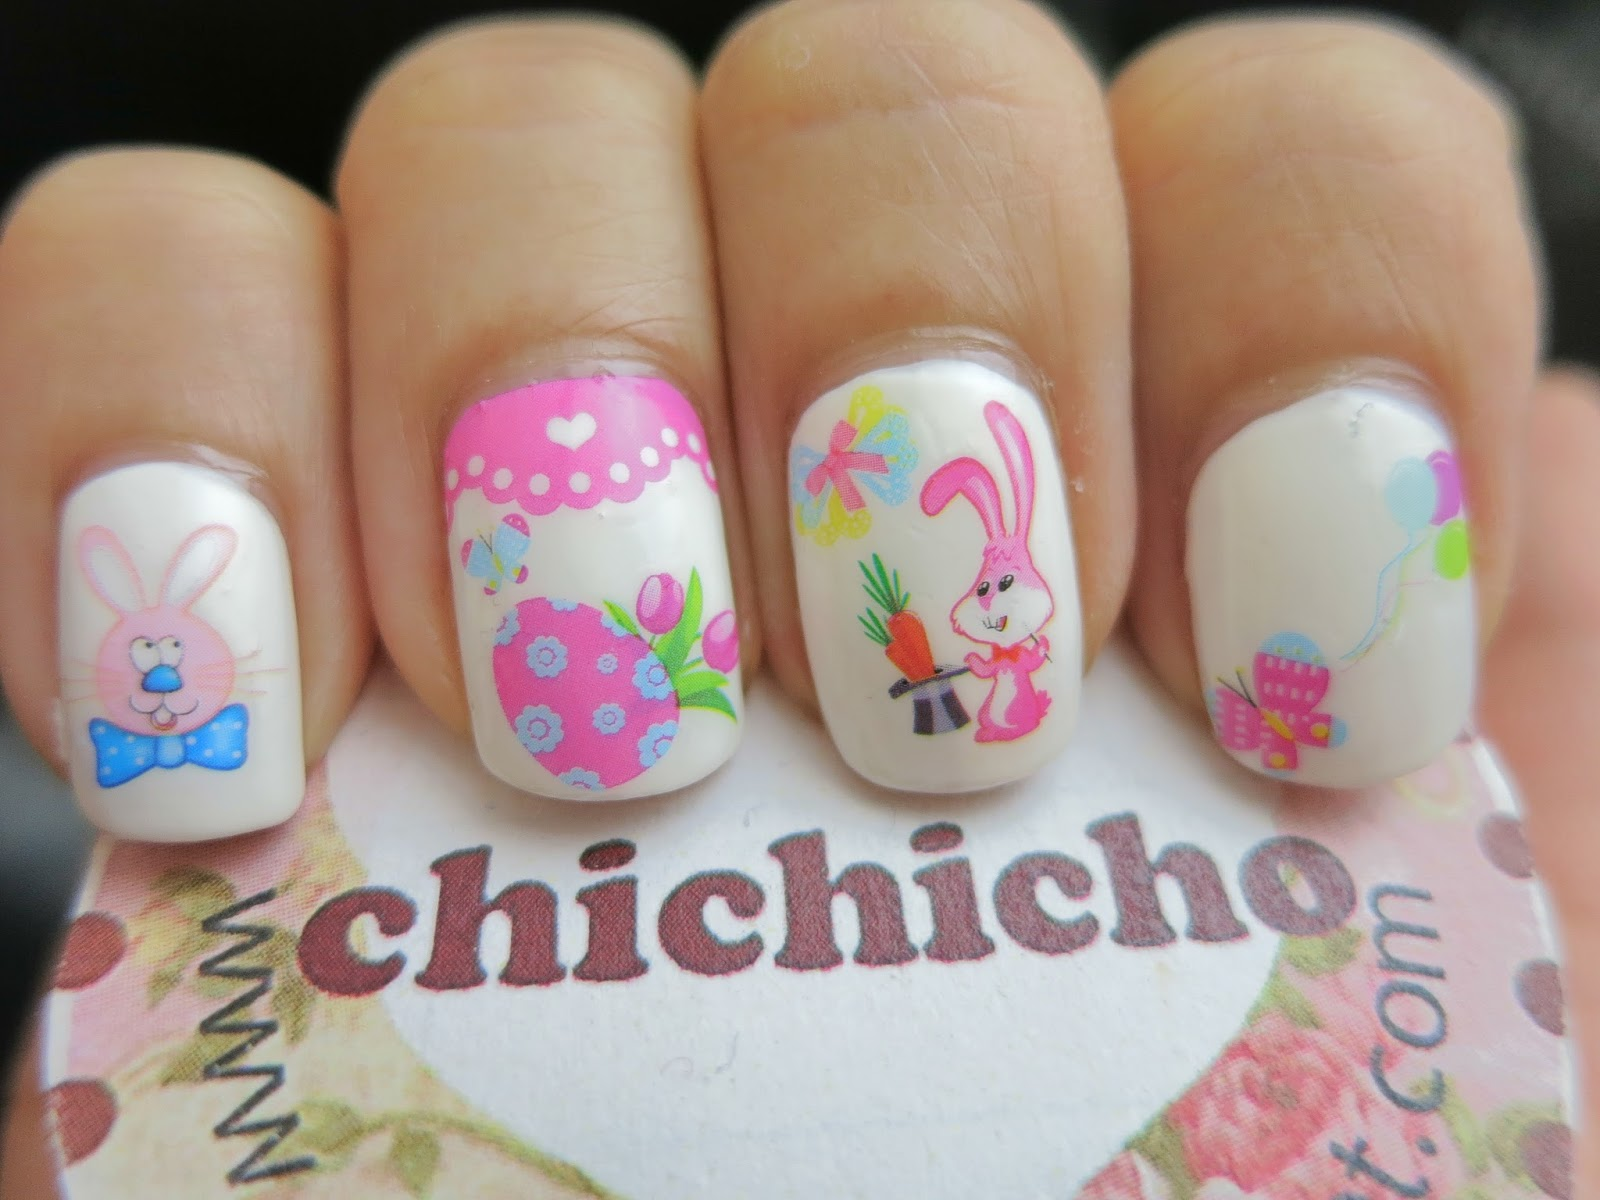 Easter nails with HOT270 Water Decal Nail Art - chichicho~